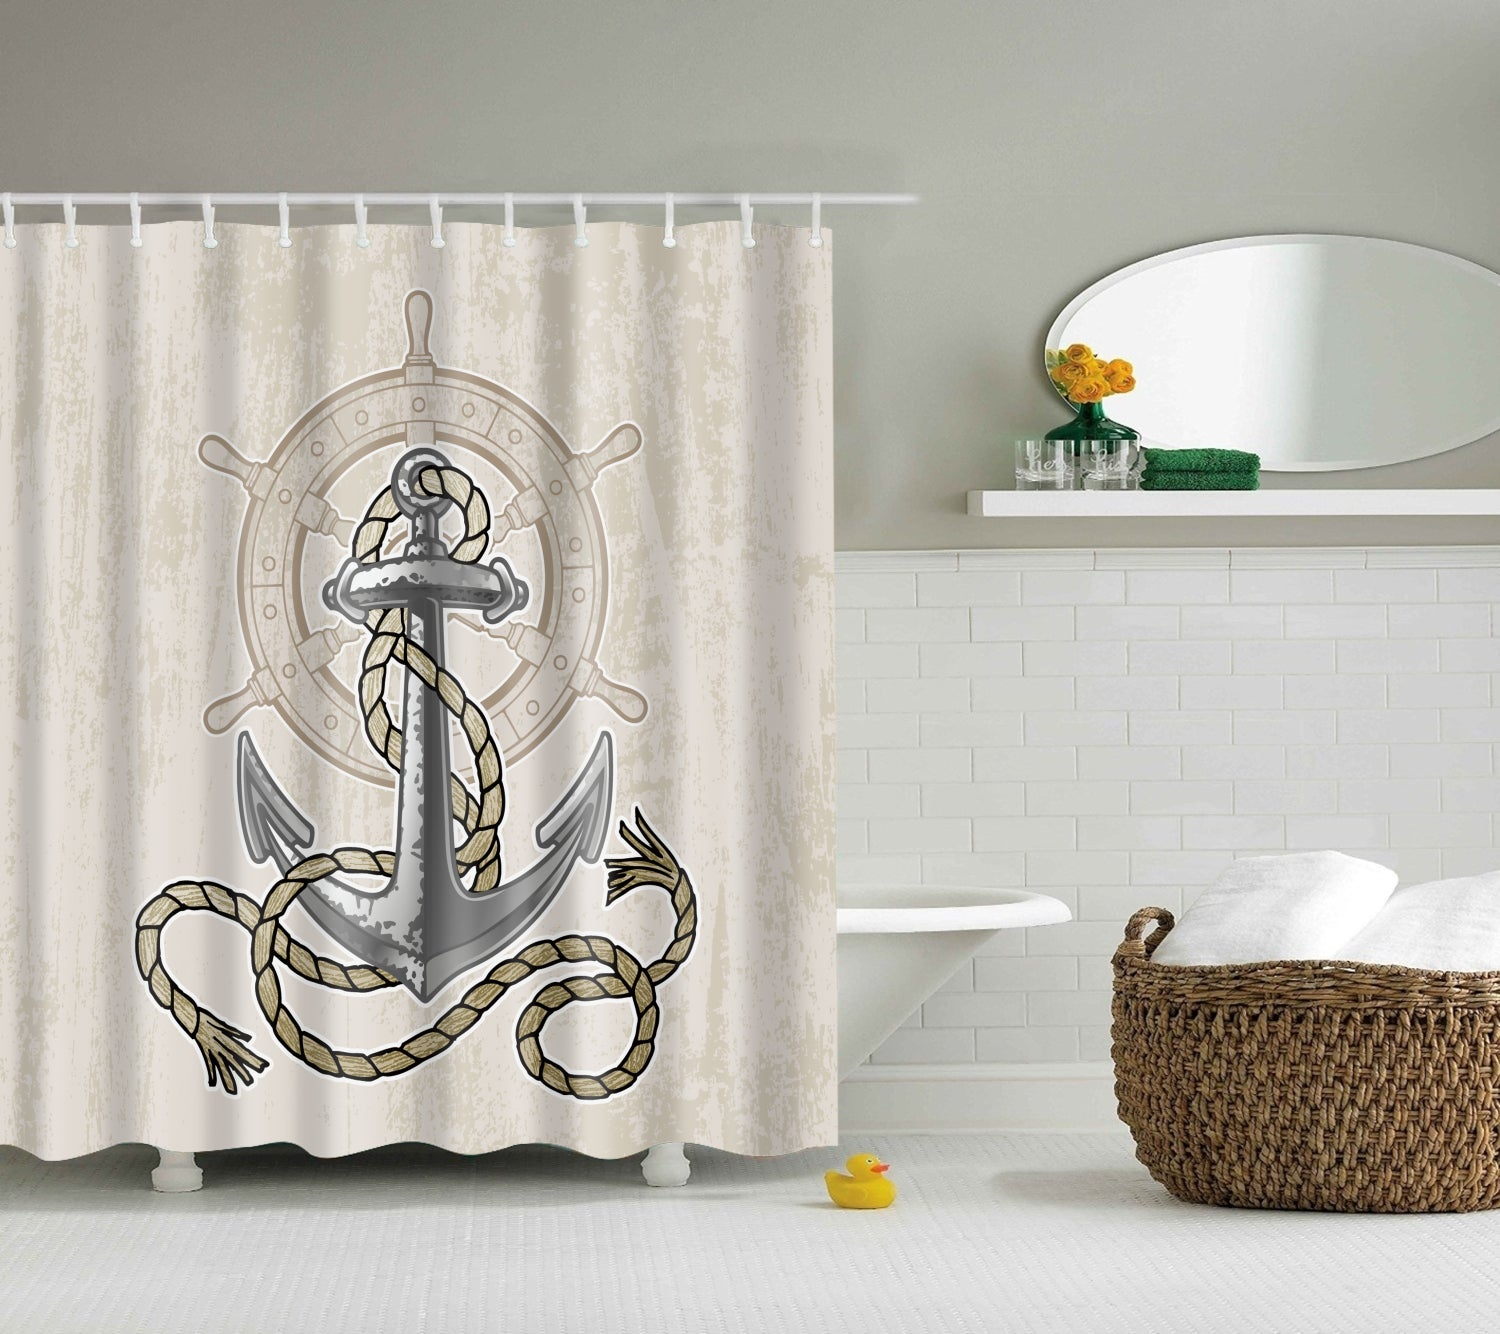 Anchor Shower Curtain Bathroom Decor Waterproof Fabric /& 12Hooks 180*180cm new